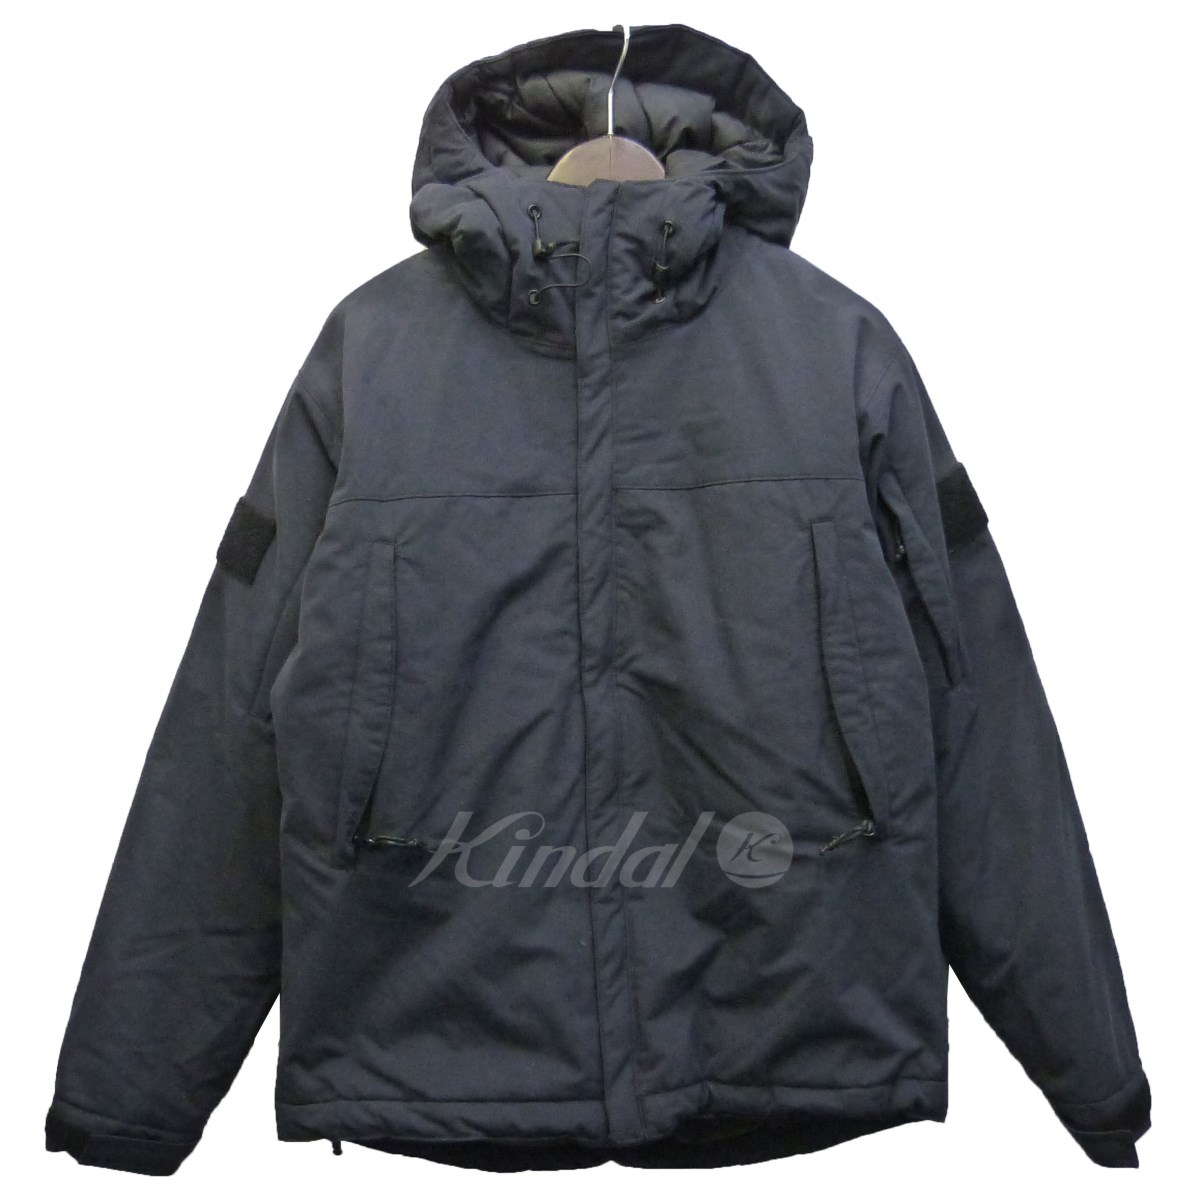 【中古】VAINL ARCHIVE×WILD THINGS 15AW 「HI LOFT SHELL-JKT」 中綿ジャケット 【送料無料】 【031618】 【KIND1550】